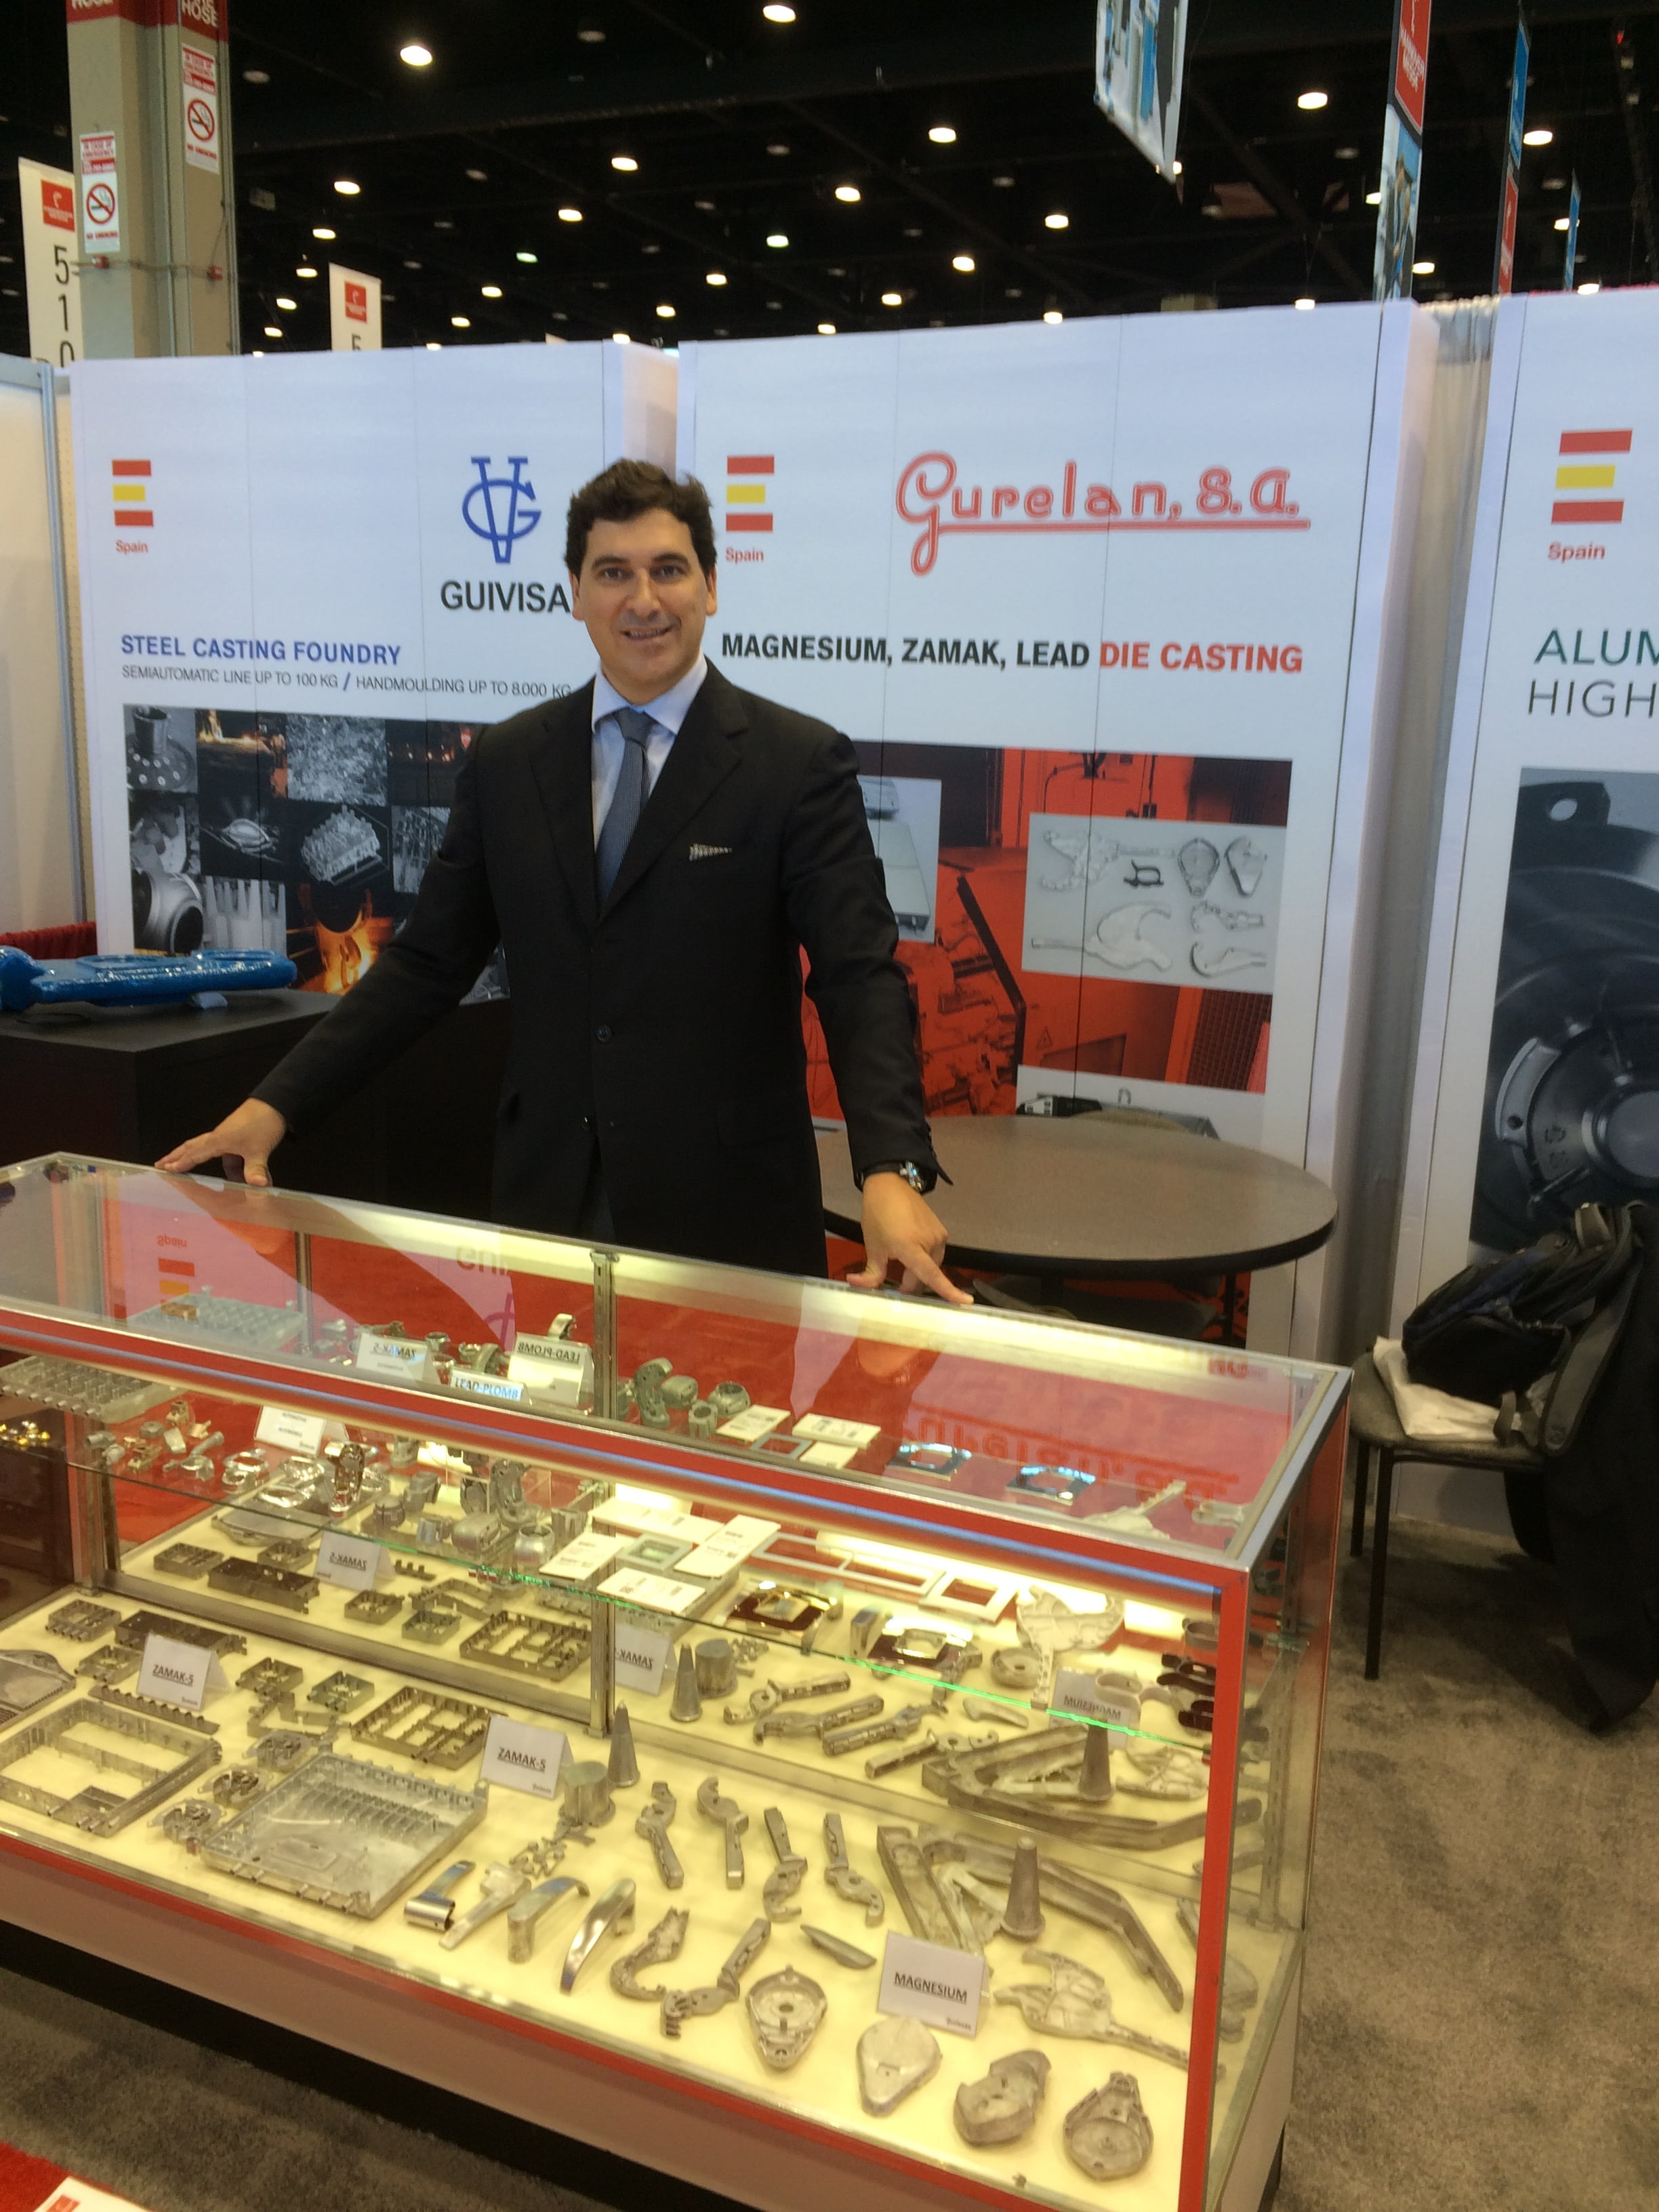 GURELAN Exhibition: IMTS